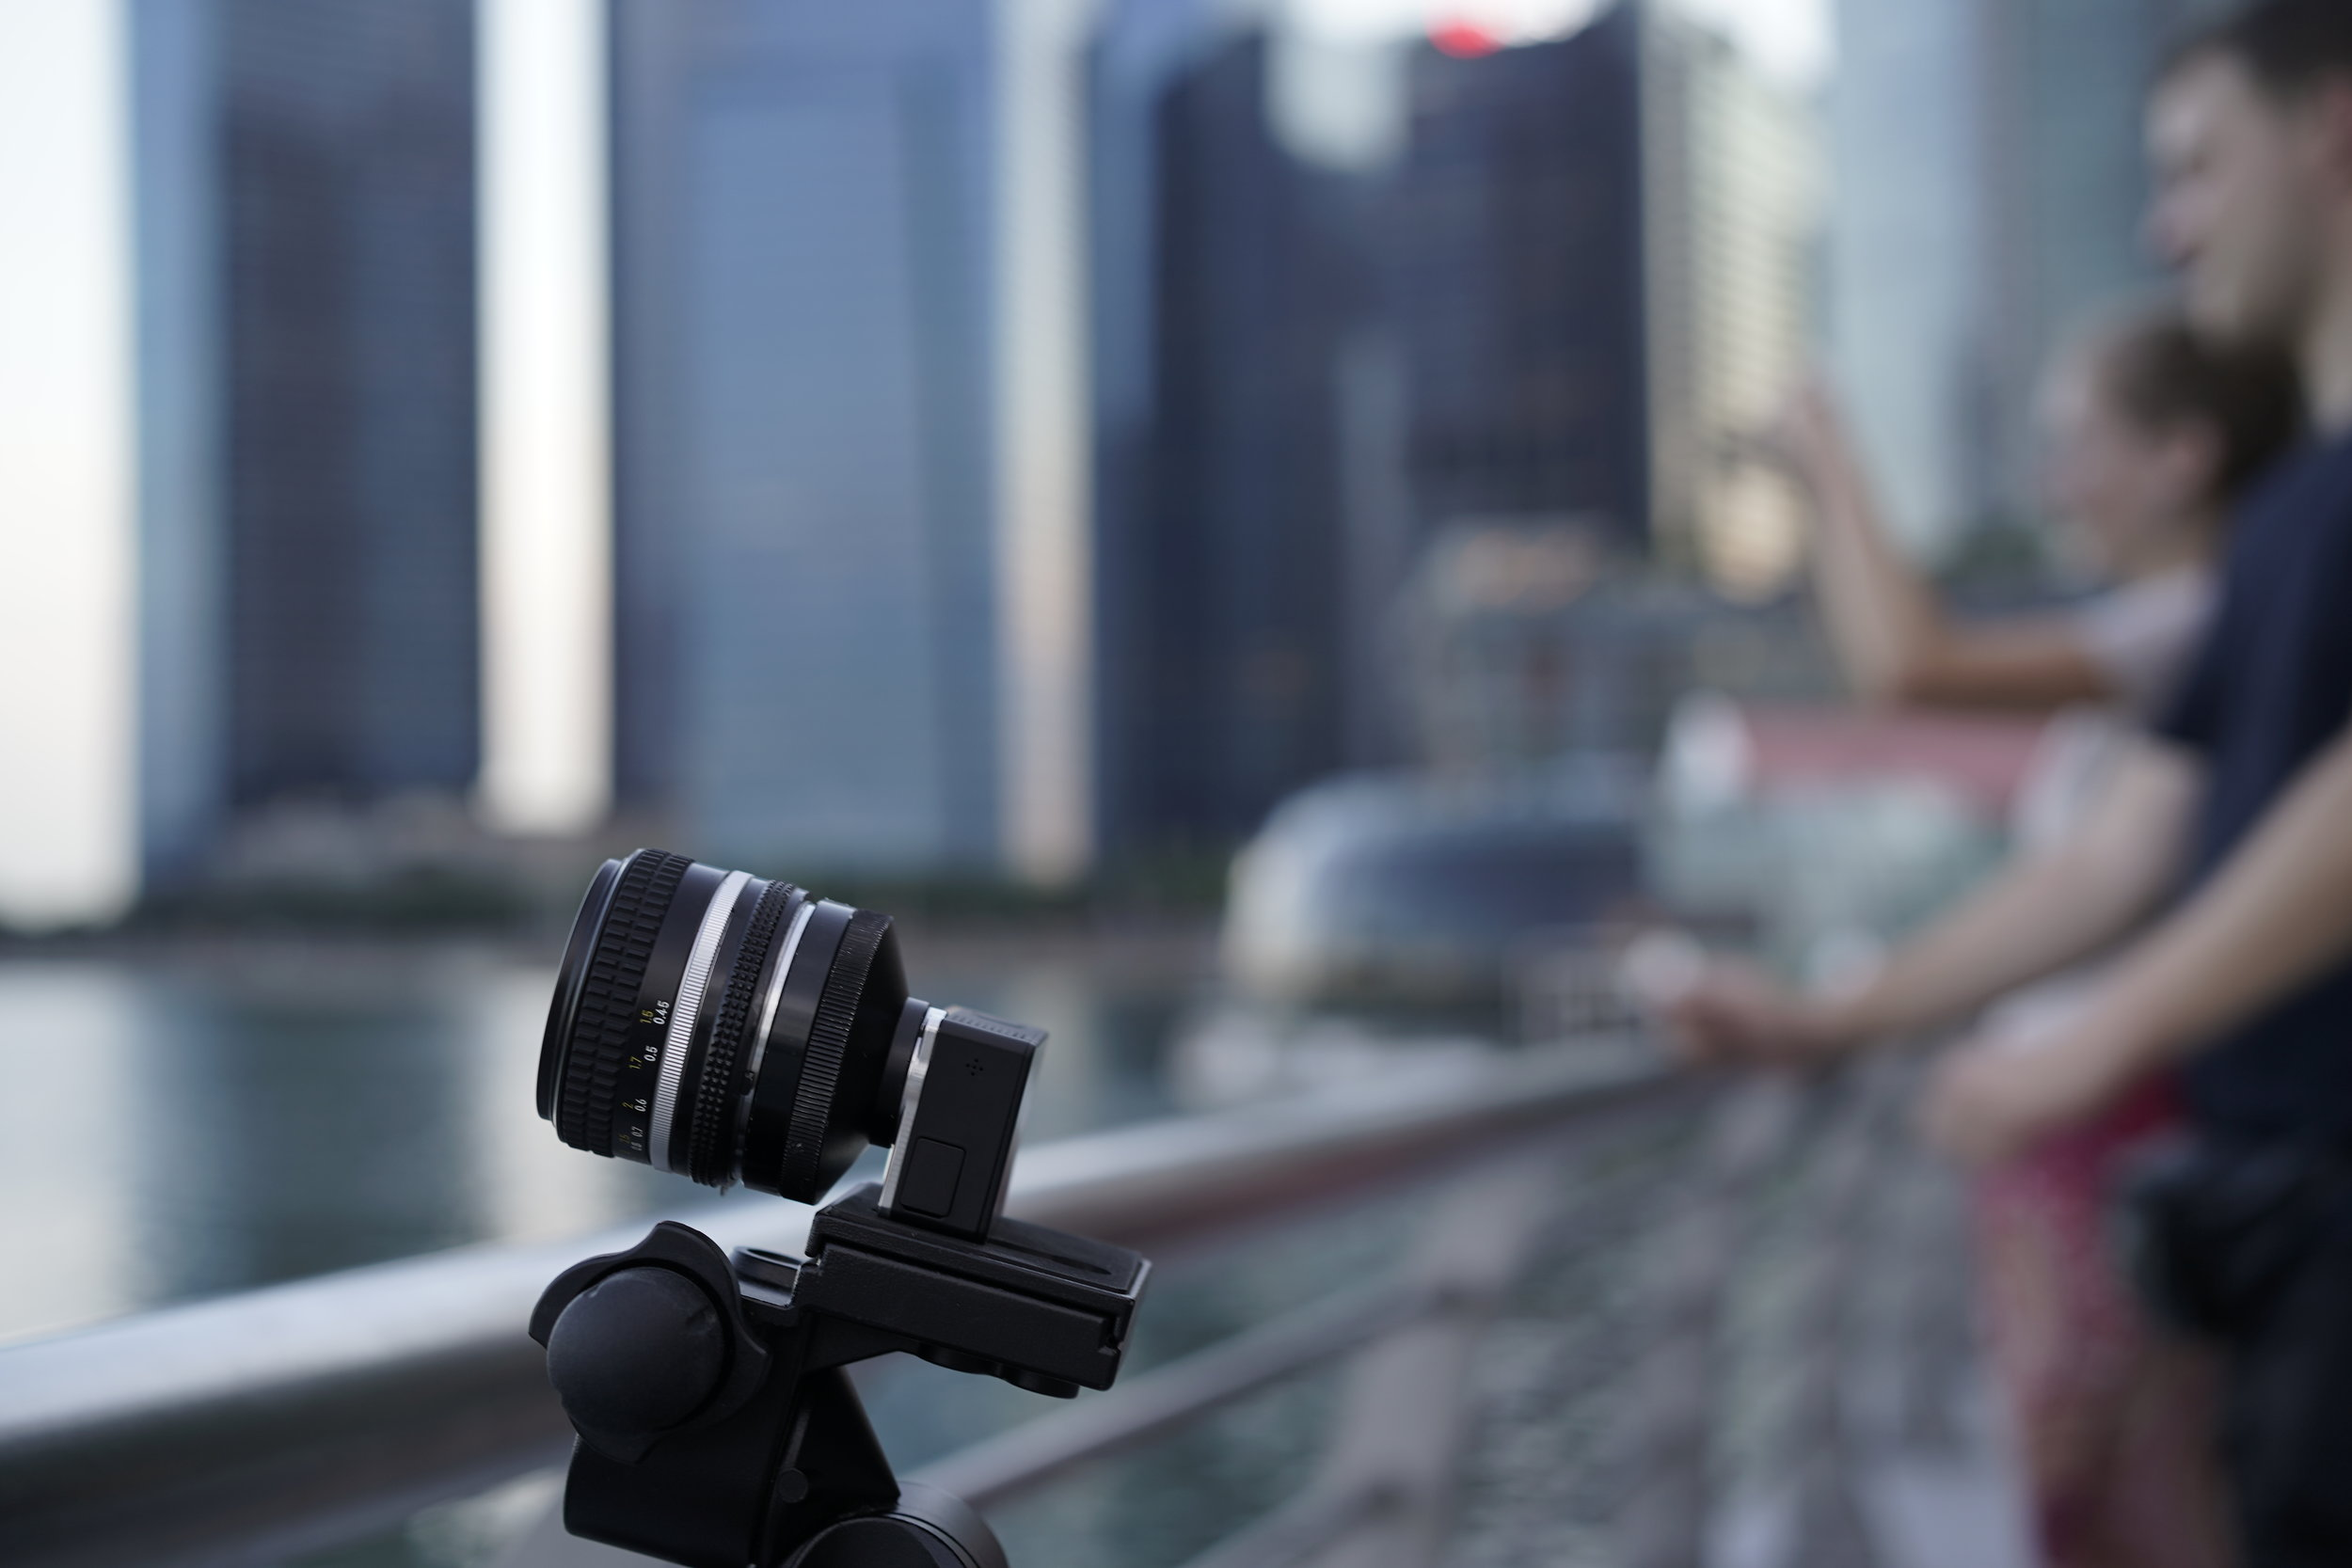 Astronomy imaging in the city? With the right subjects, why not?